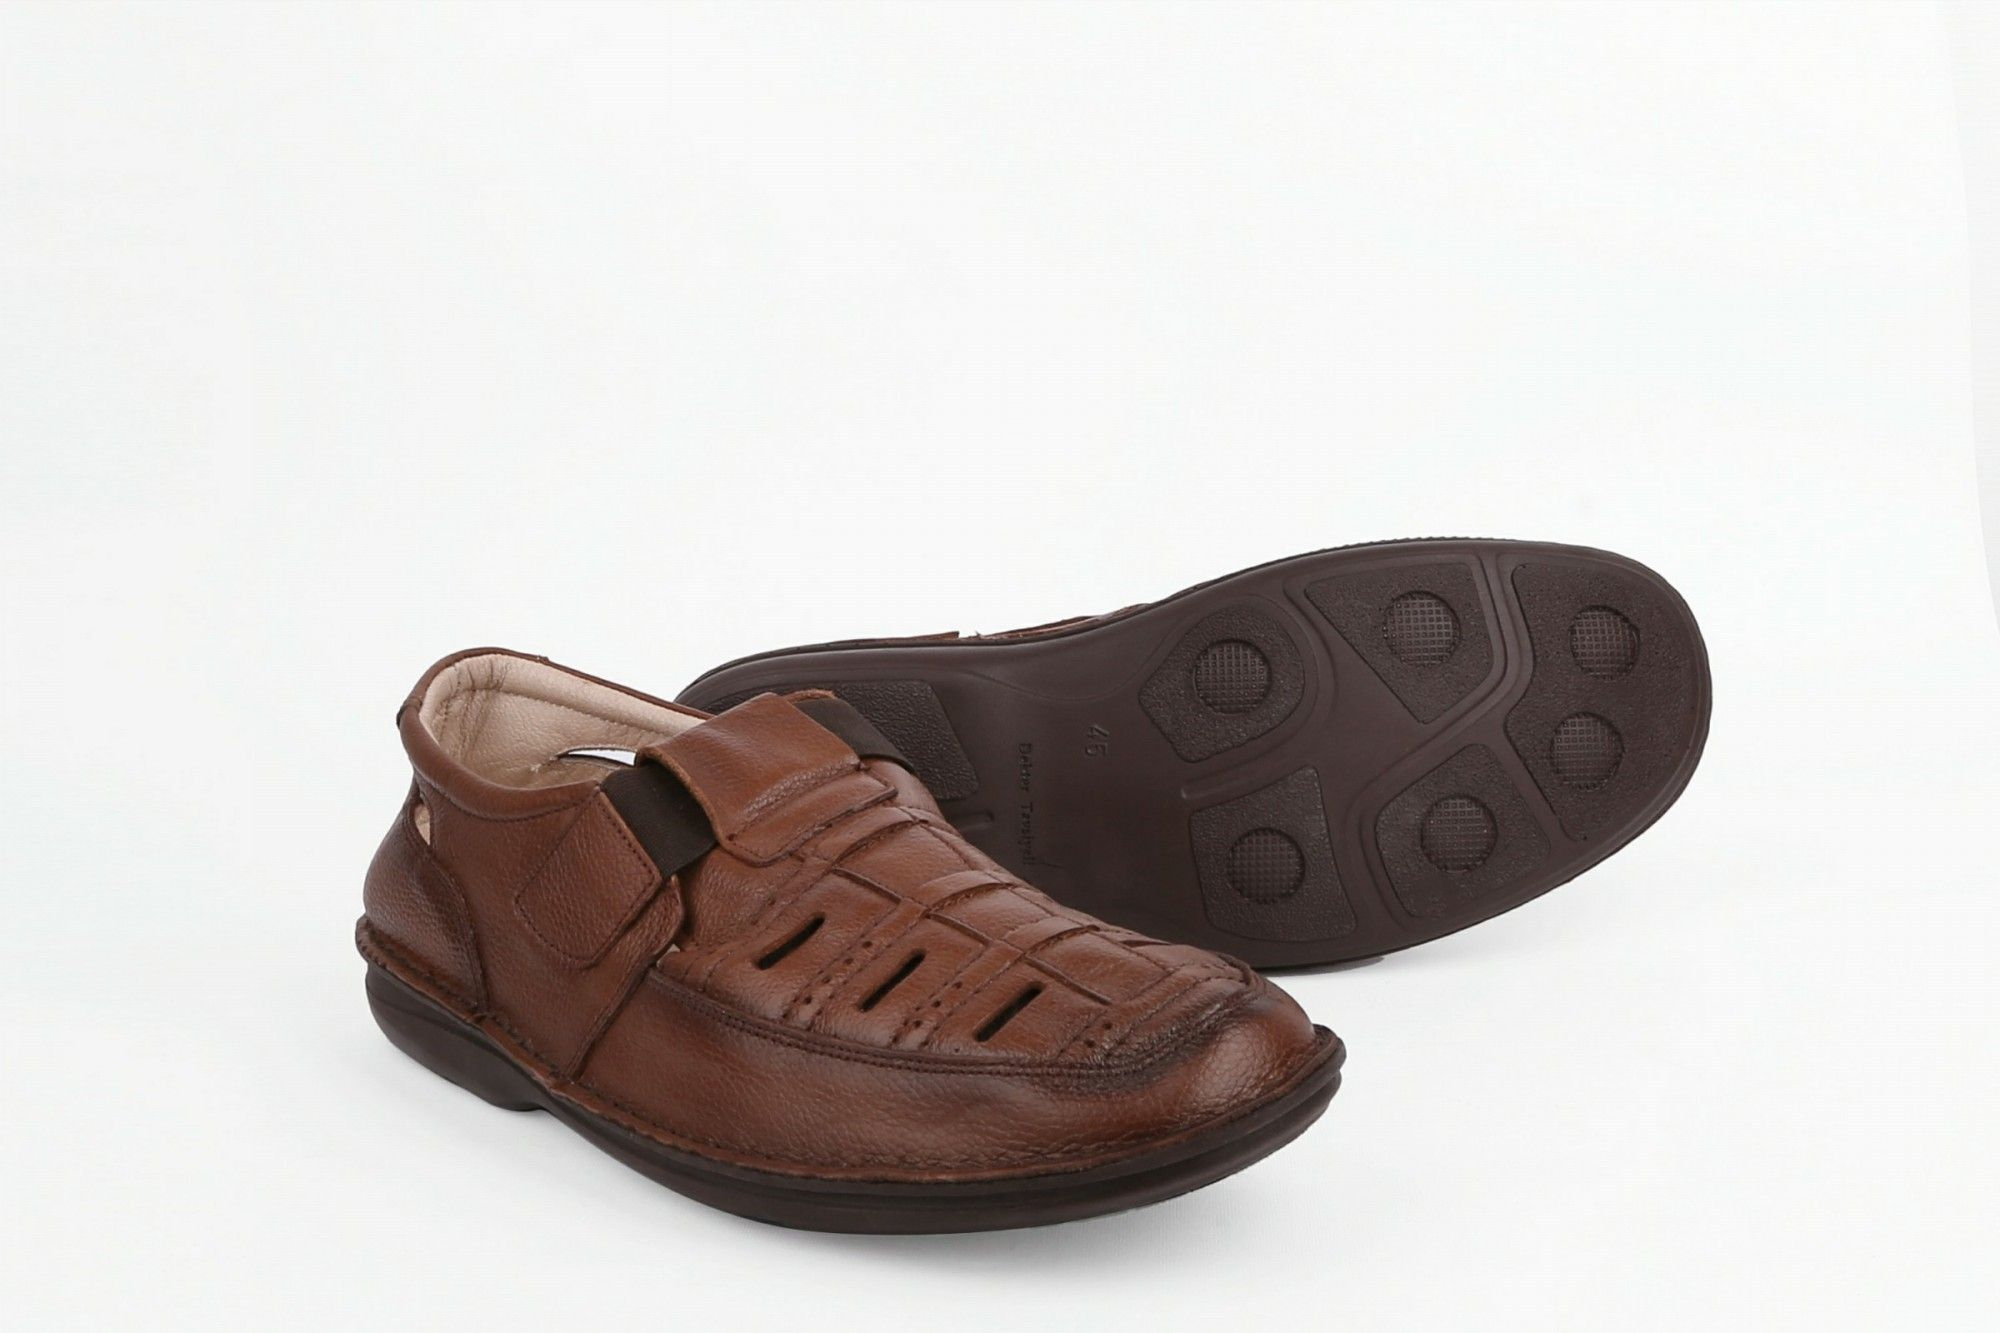 4fb809fda Skechers Cocoa Brown Slip On For Men Price in Egypt | Souq | Shoes ...